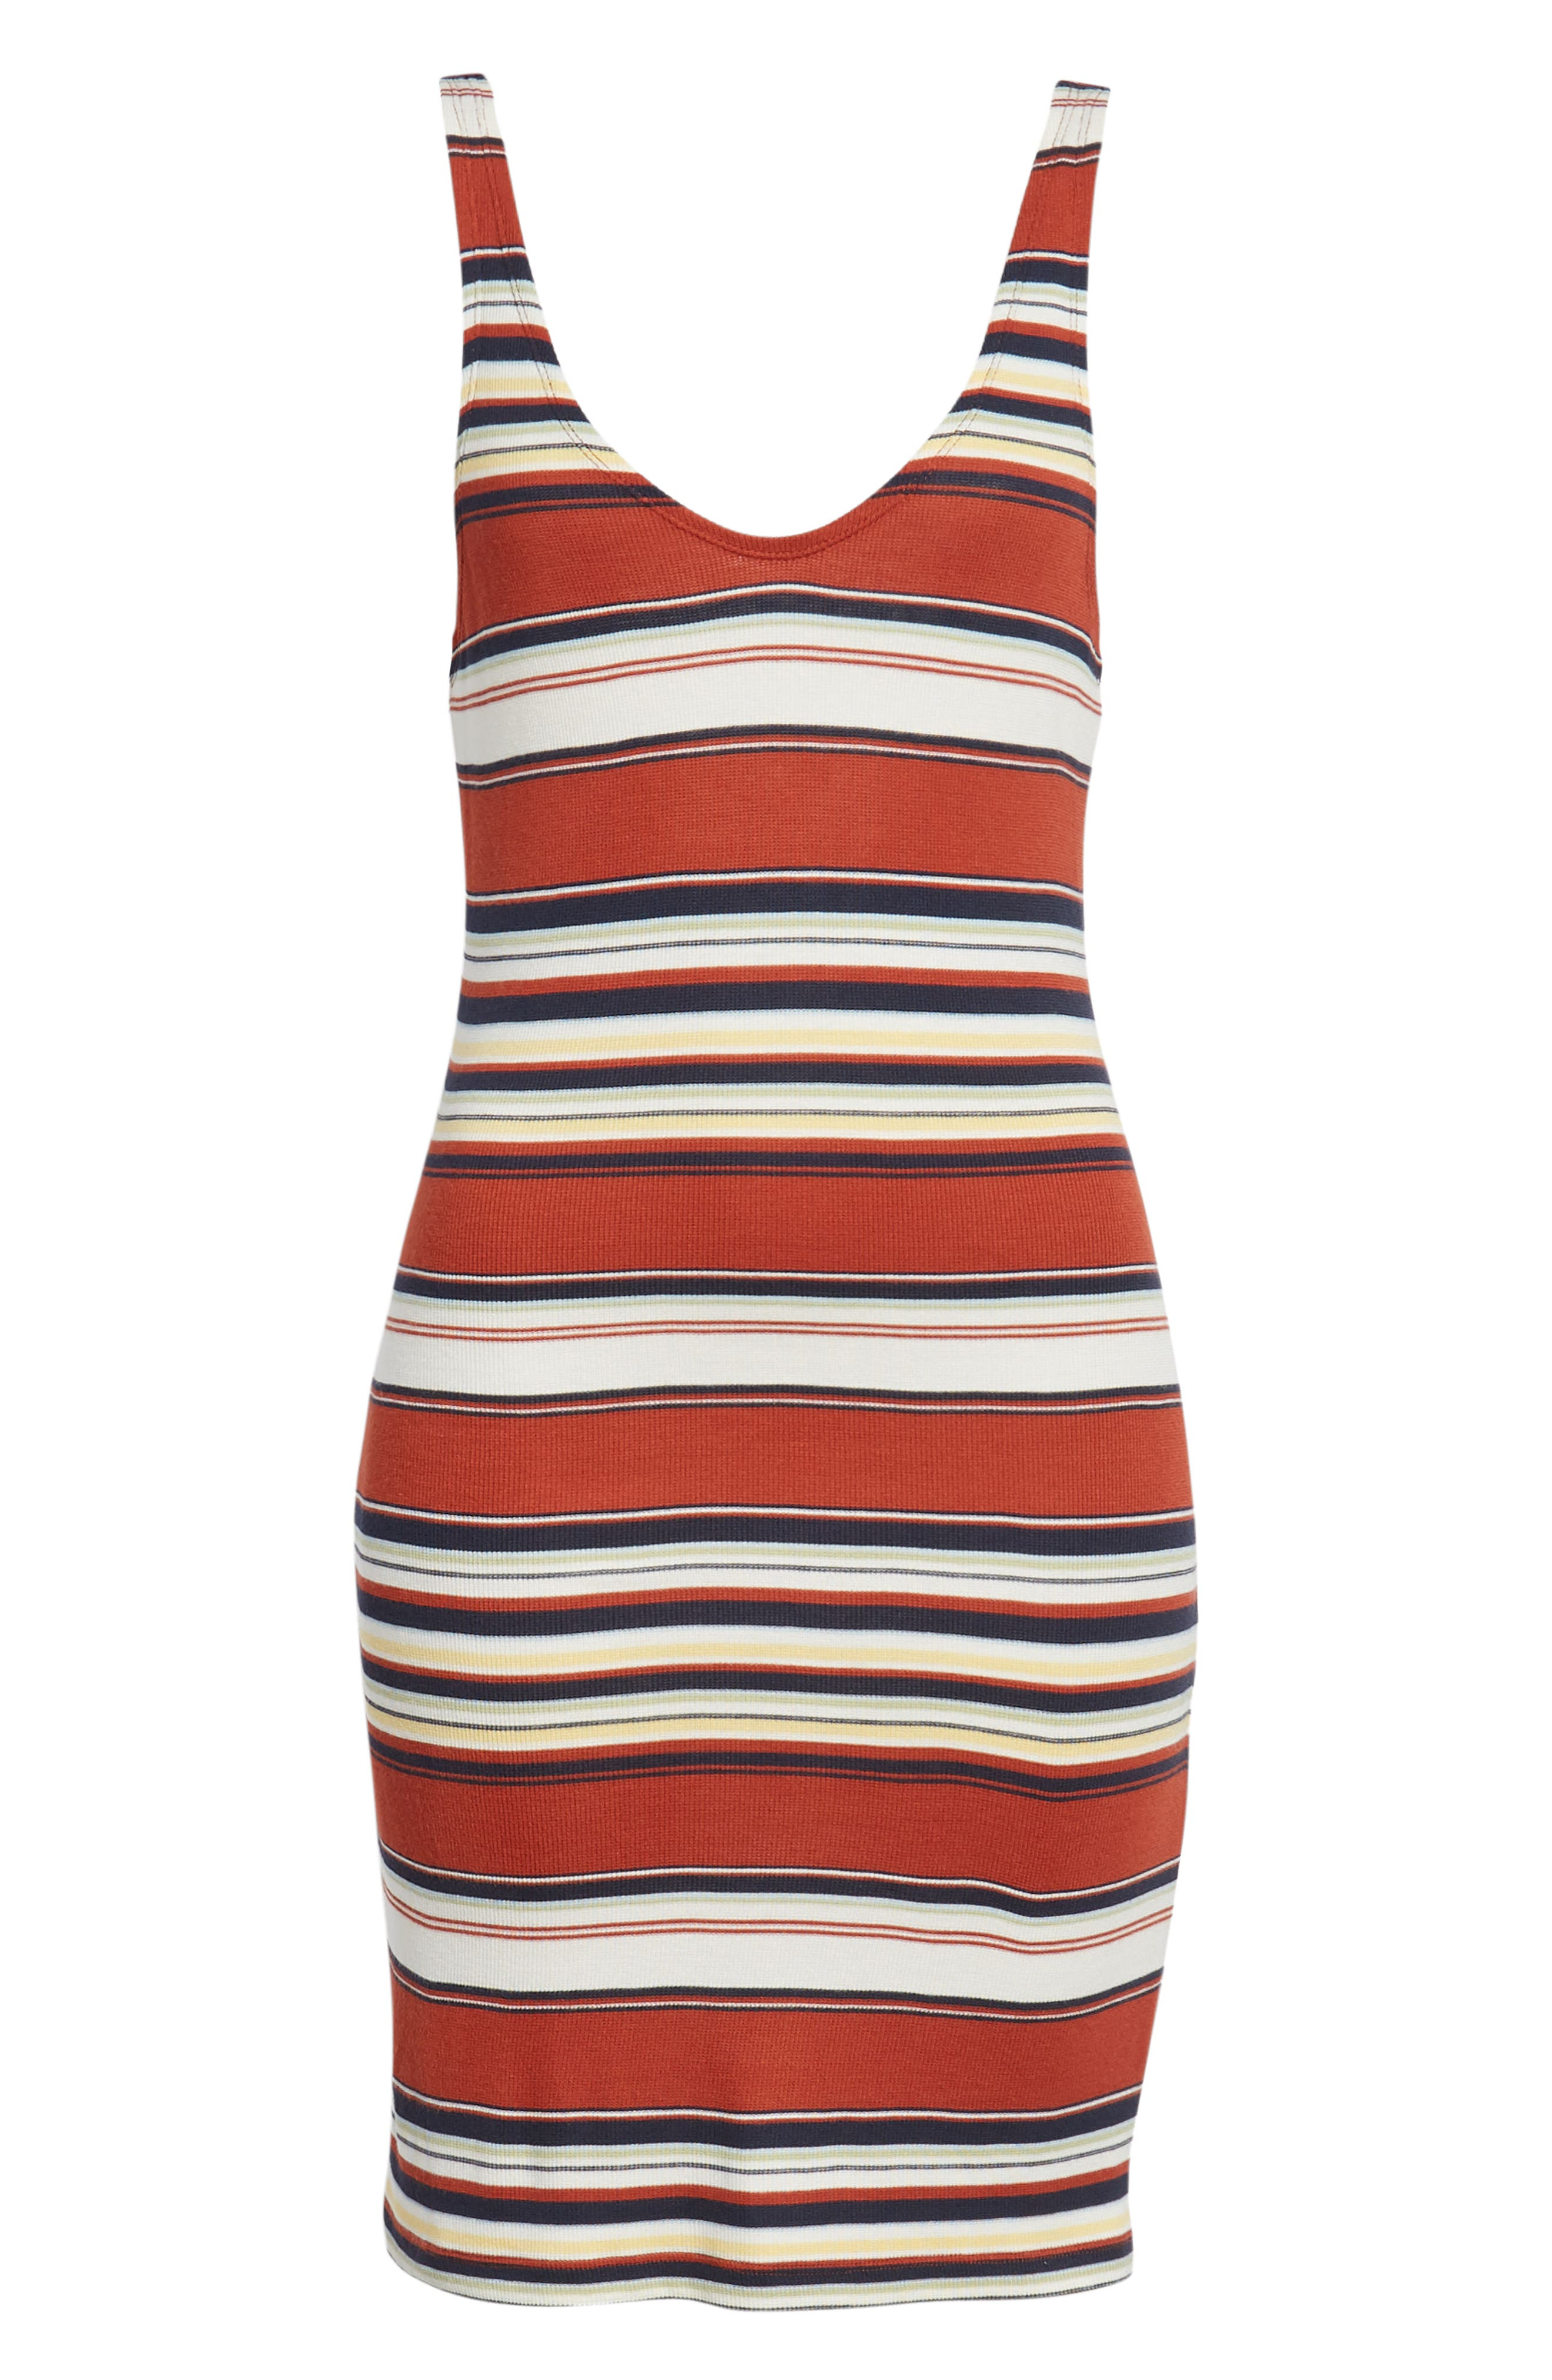 Homesick Stripe Ribbed Dress,                             Alternate thumbnail 7, color,